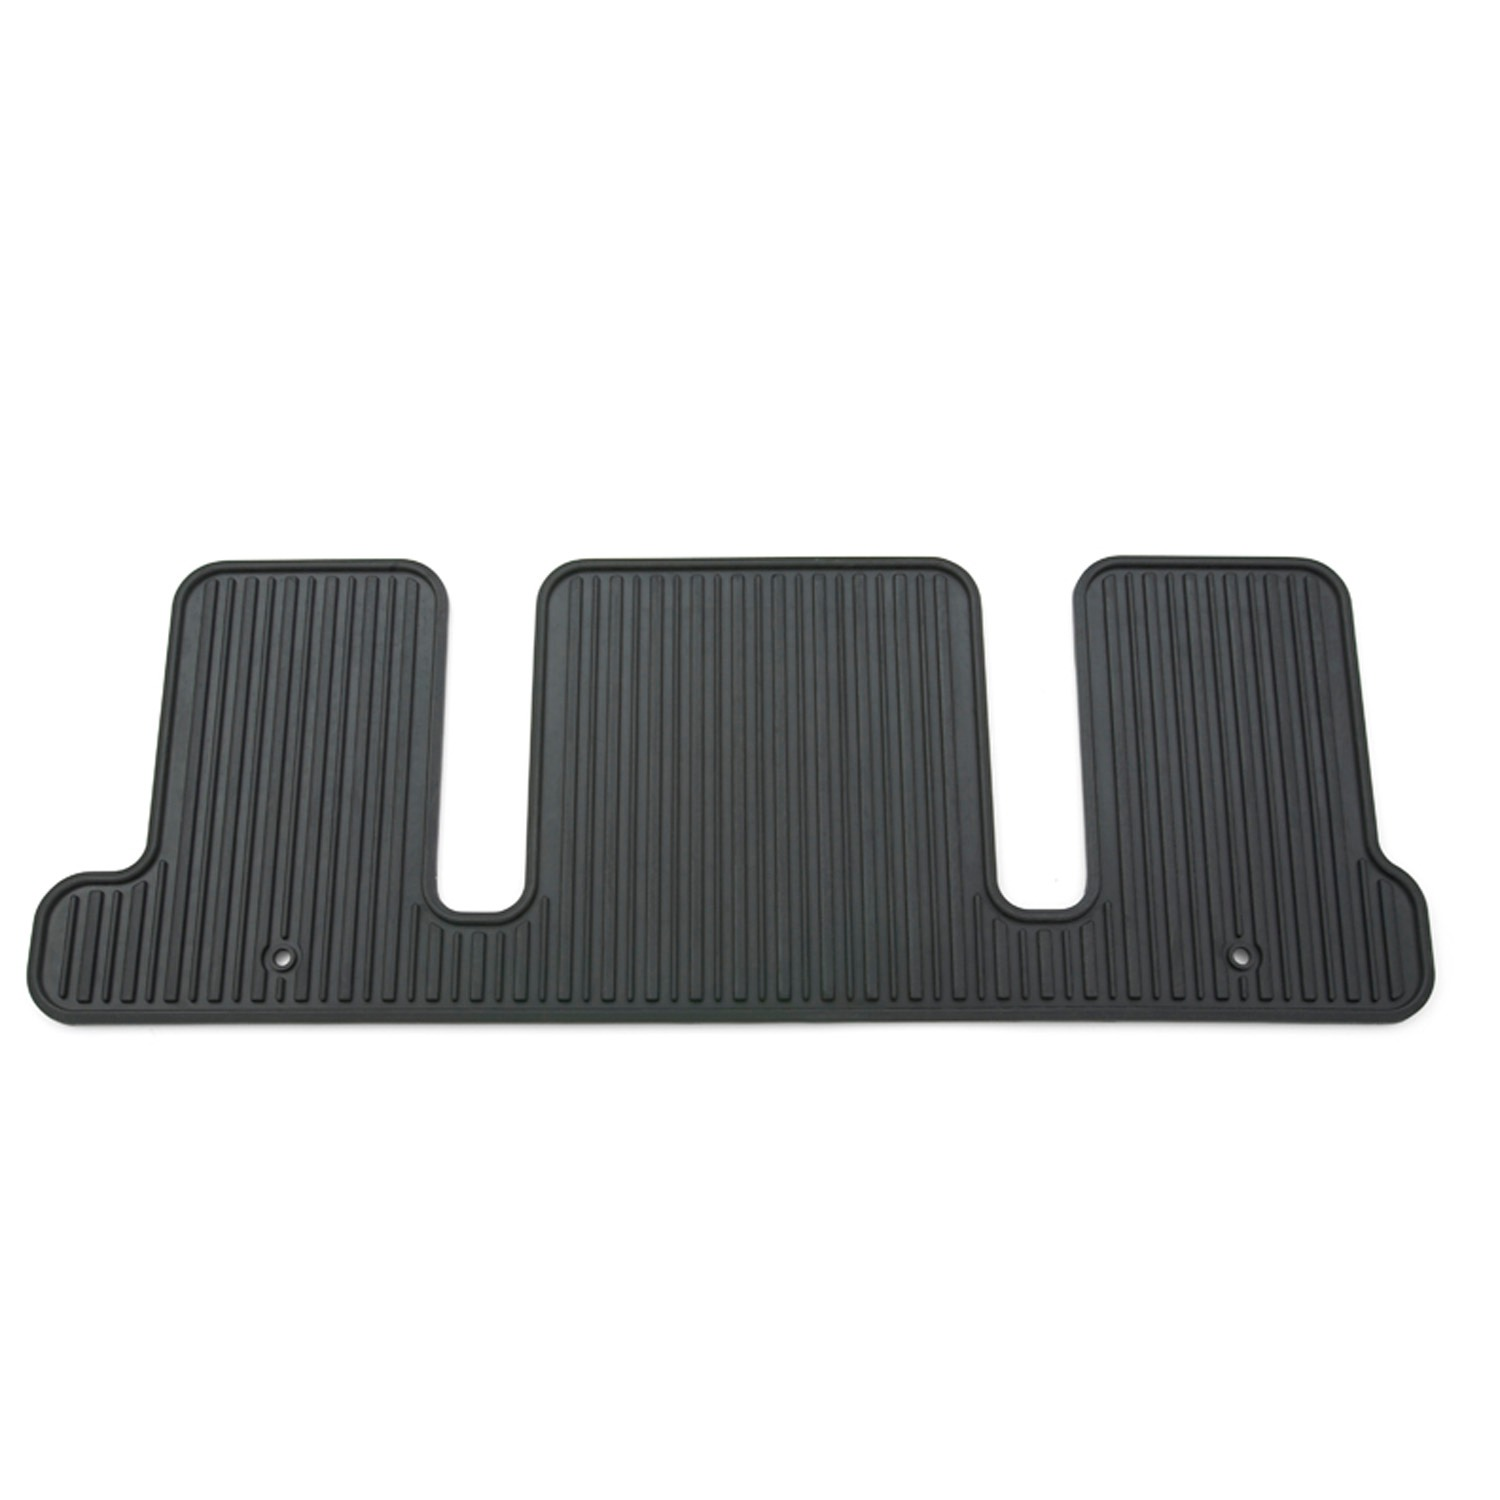 GM Accessories 22890016 Front All-Weather Floor Mats in Ebony with Traverse Logo